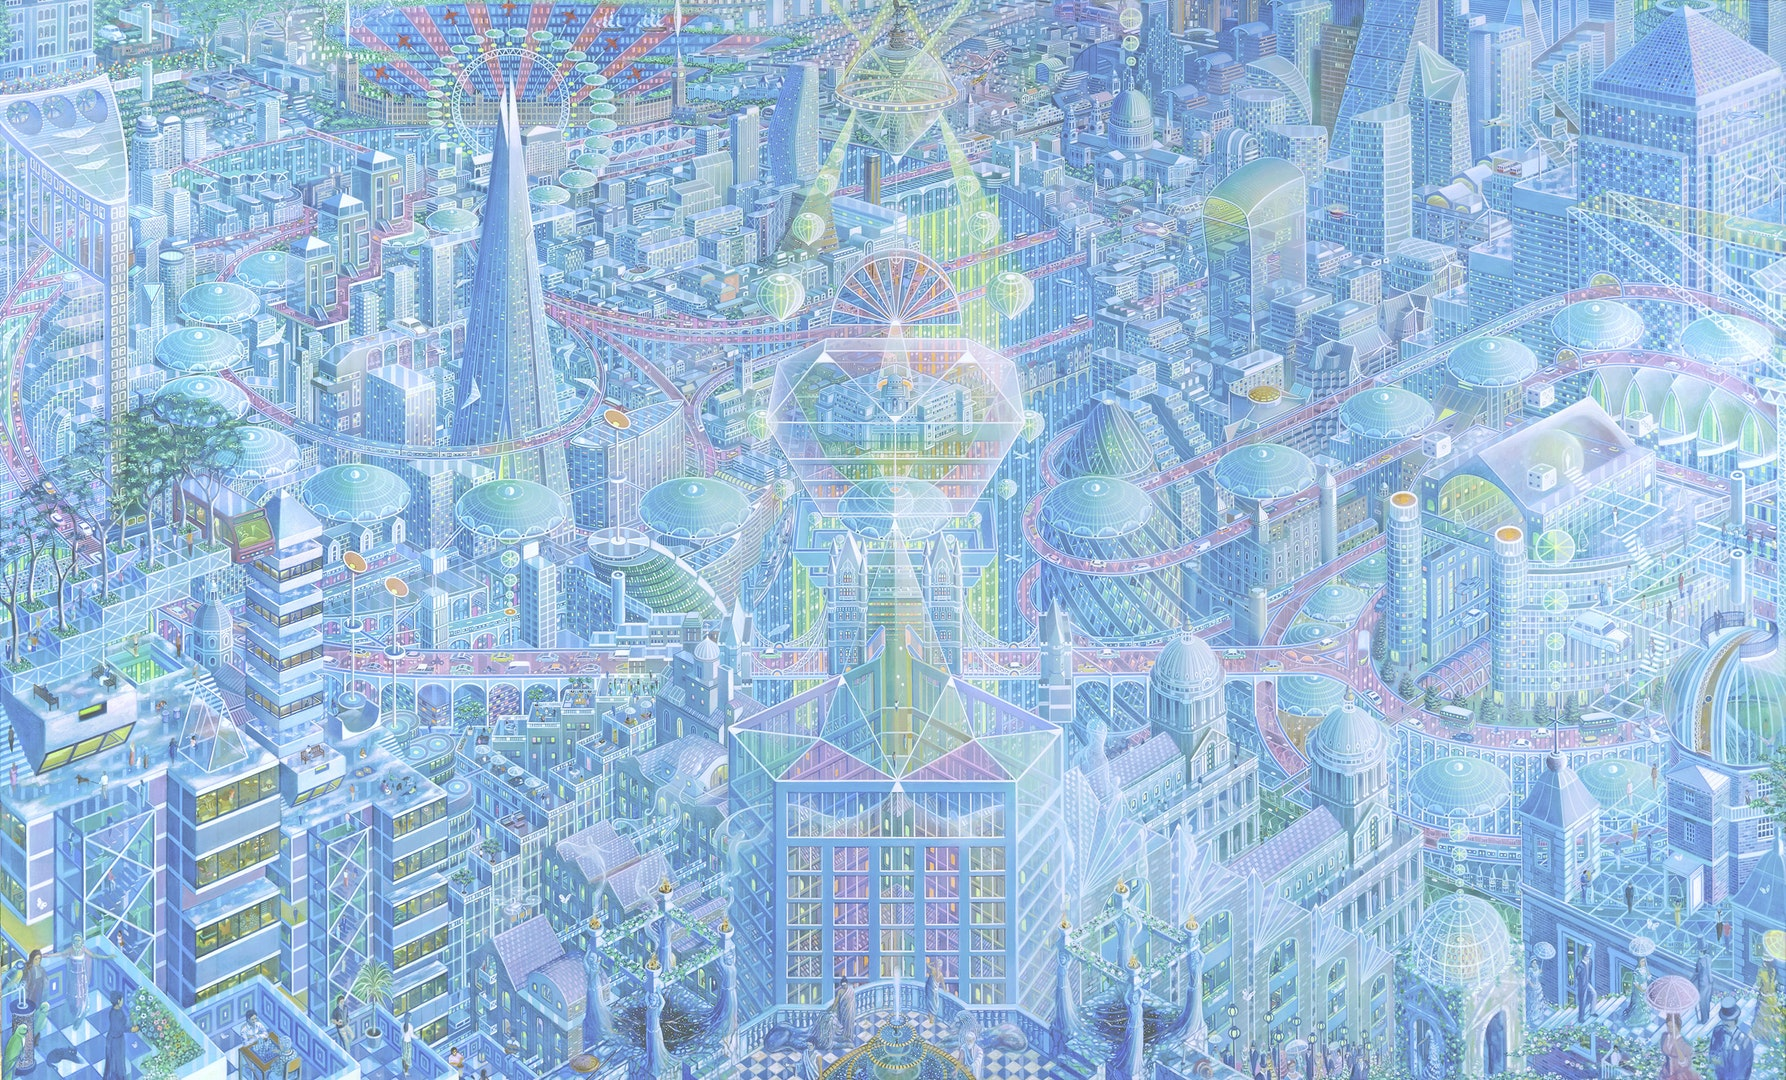 'Metropolis London', Caio Locke, Acrylic on canvas, 155 x 255 x 5 cm